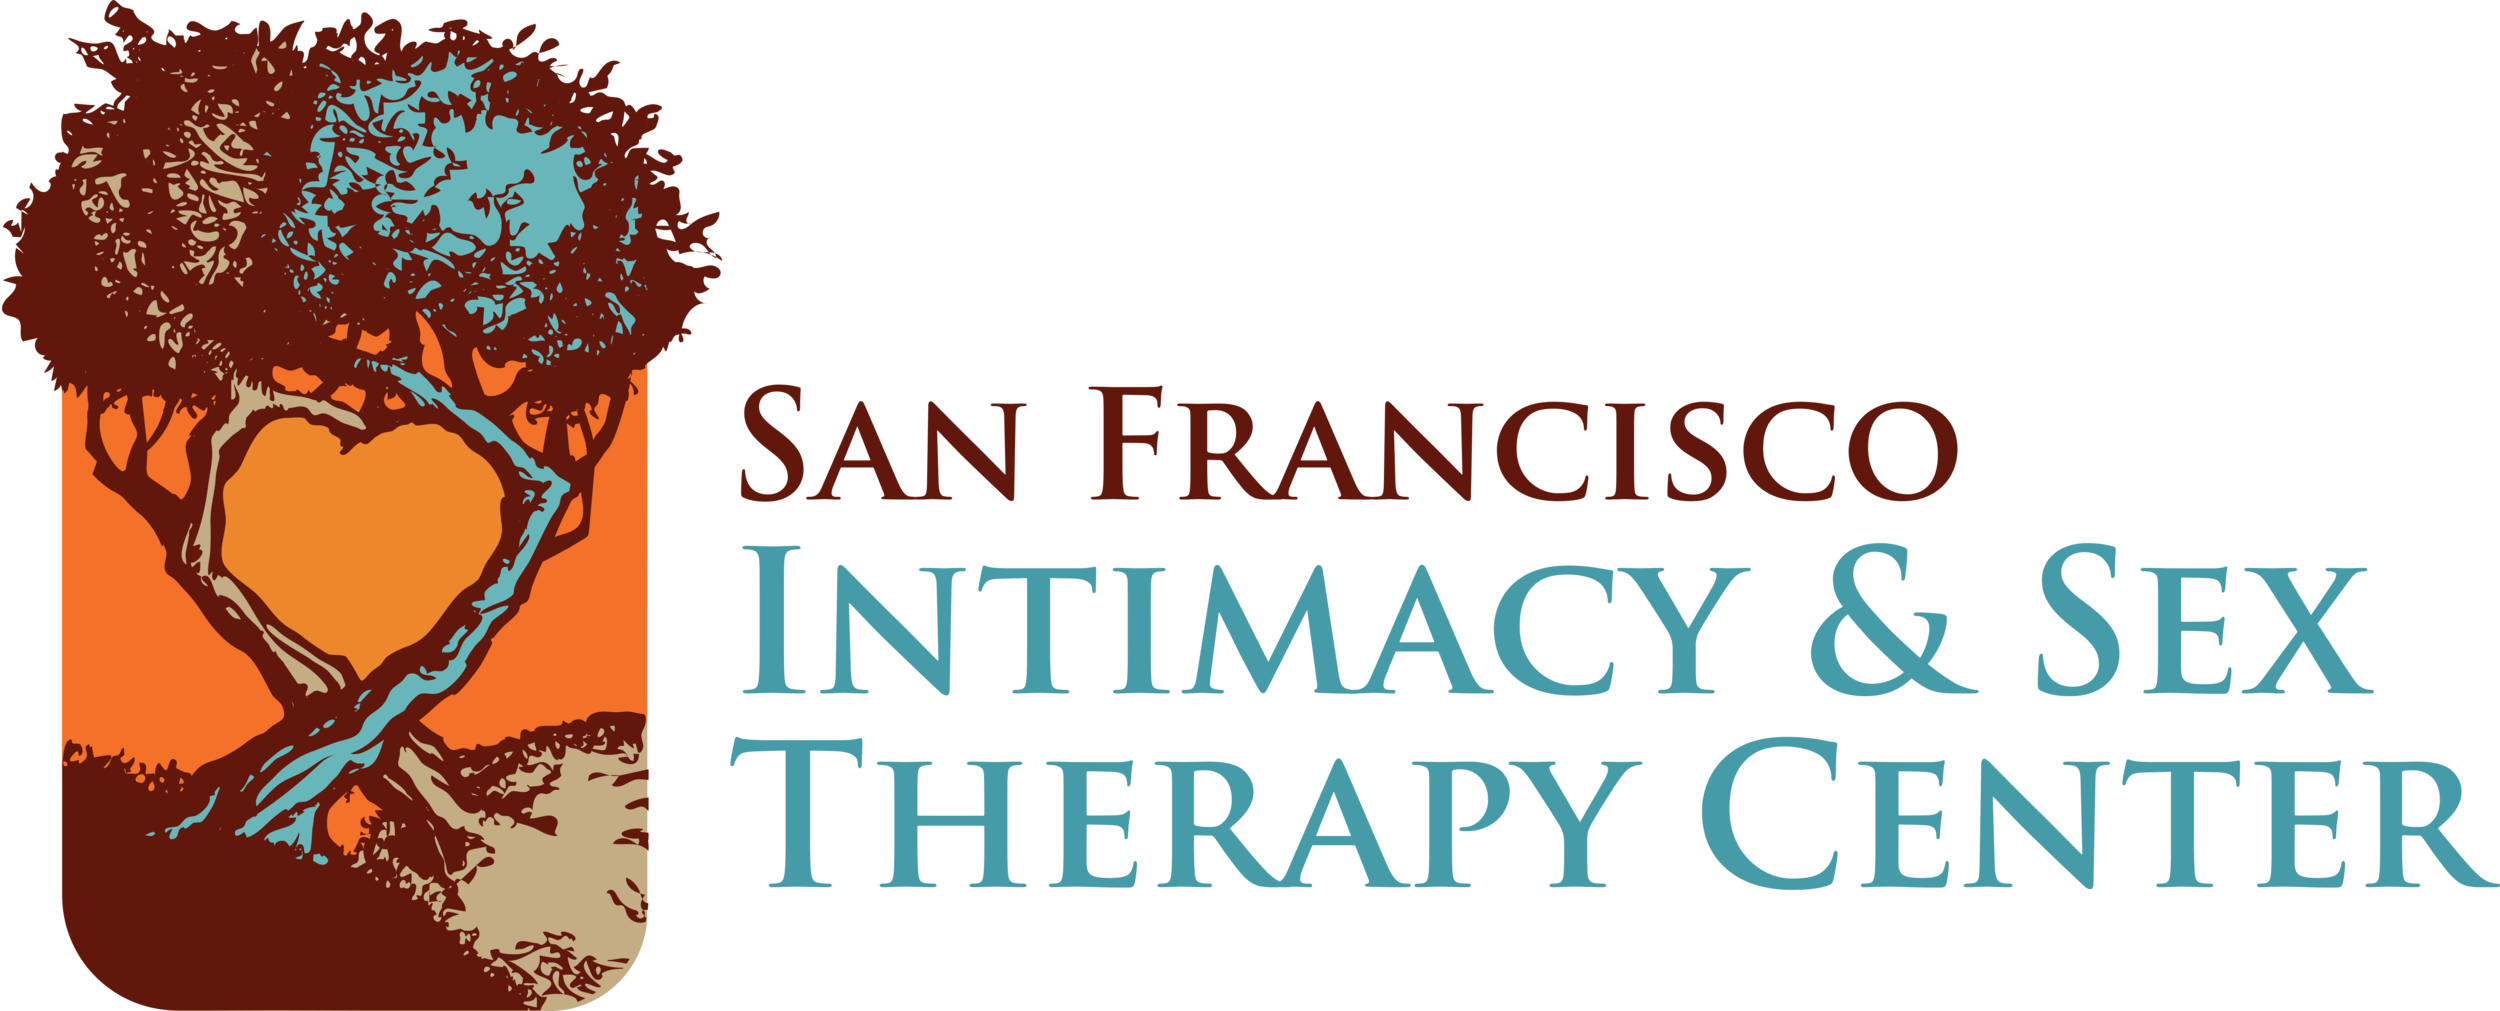 We Expanded... - We are pleased to announce the opening of our sister center offering San Francisco Couples Counseling & Sex Therapy.The San Francisco Intimacy & Sex Therapy Center is a highly specialized San Francisco therapy center designed to promote healthy intimacy and sexual expression without shame or stigma.